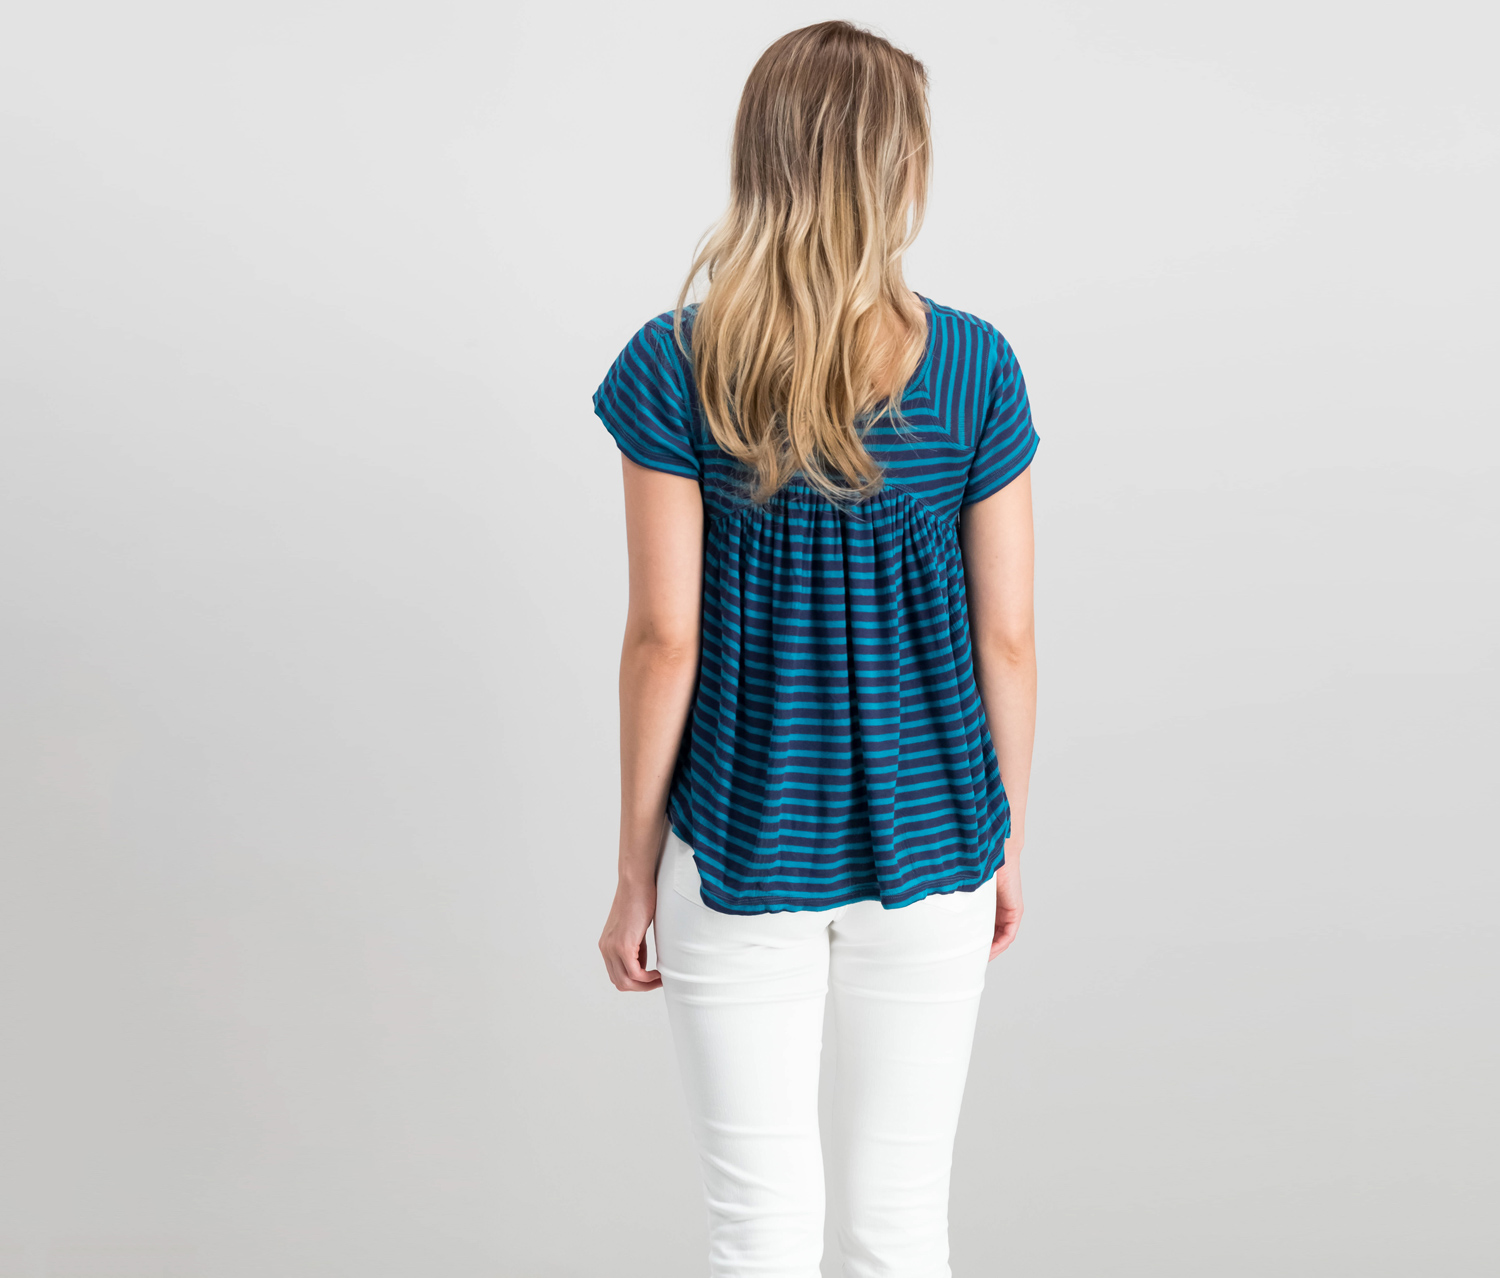 Free People Womens JoJo Navy Striped Casual Pullover Top Shirt S BHFO 5608